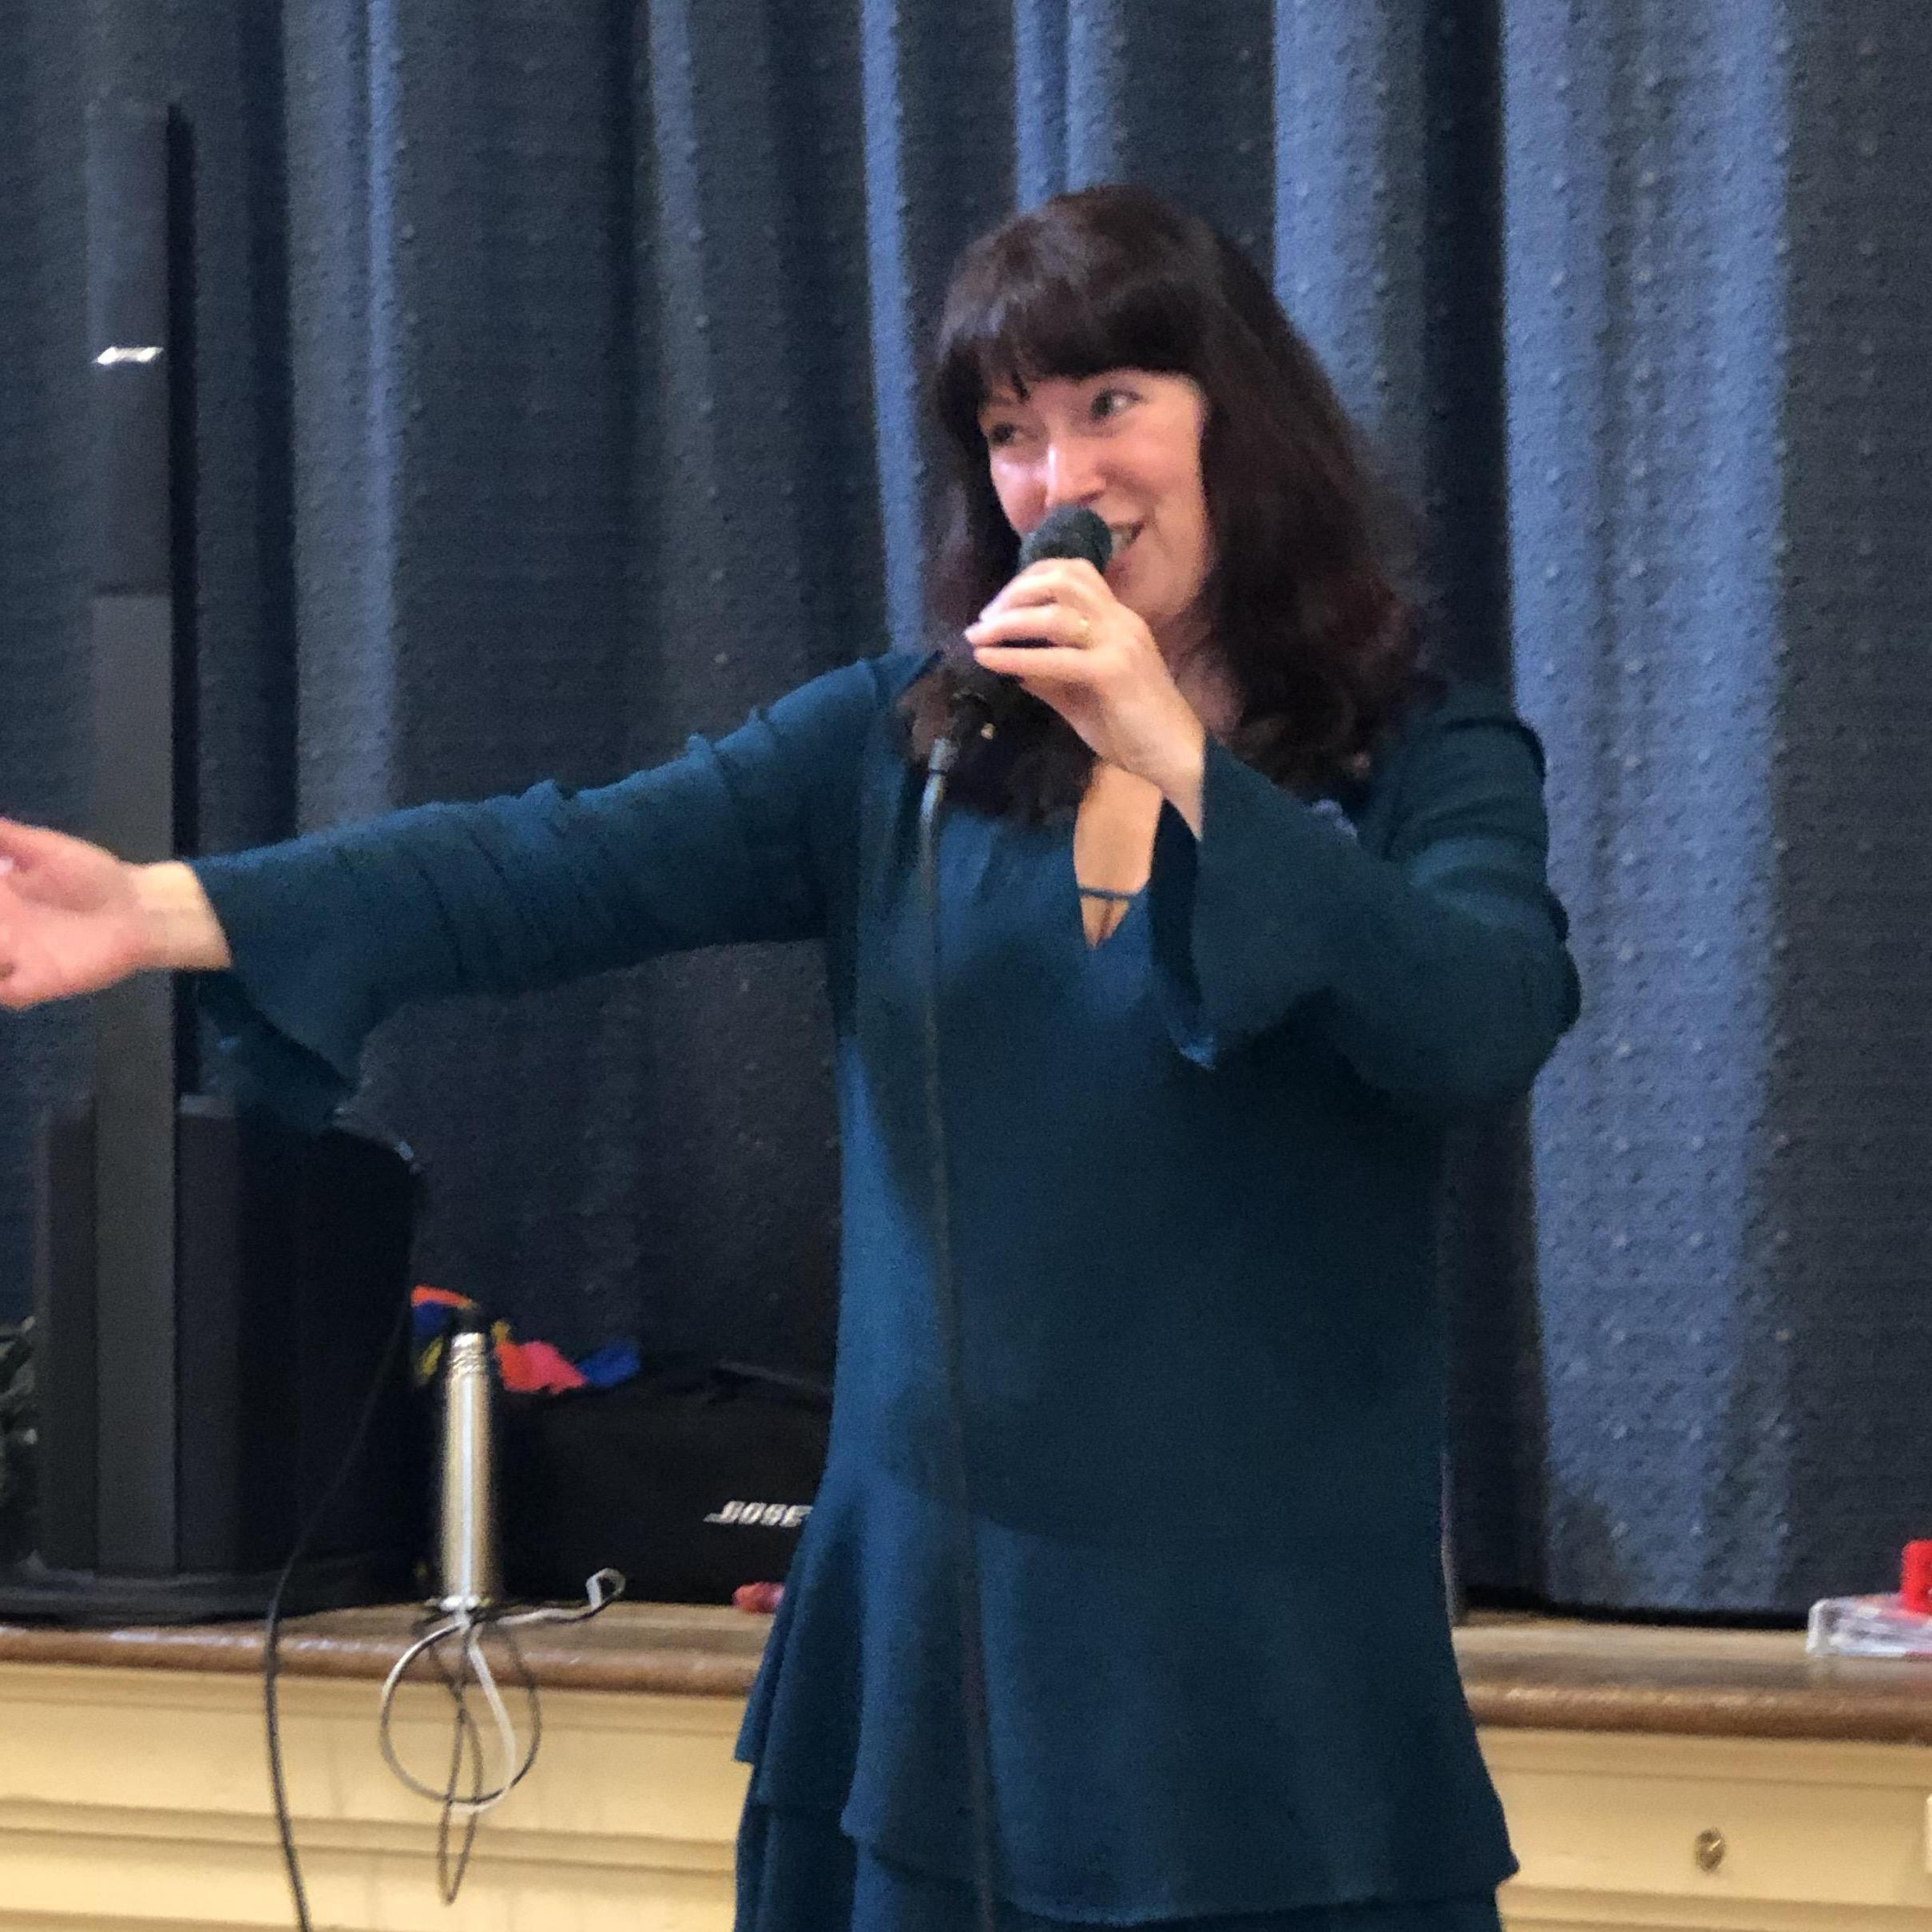 Wendy Evans singing at Home Instead's Community Event in Hayling